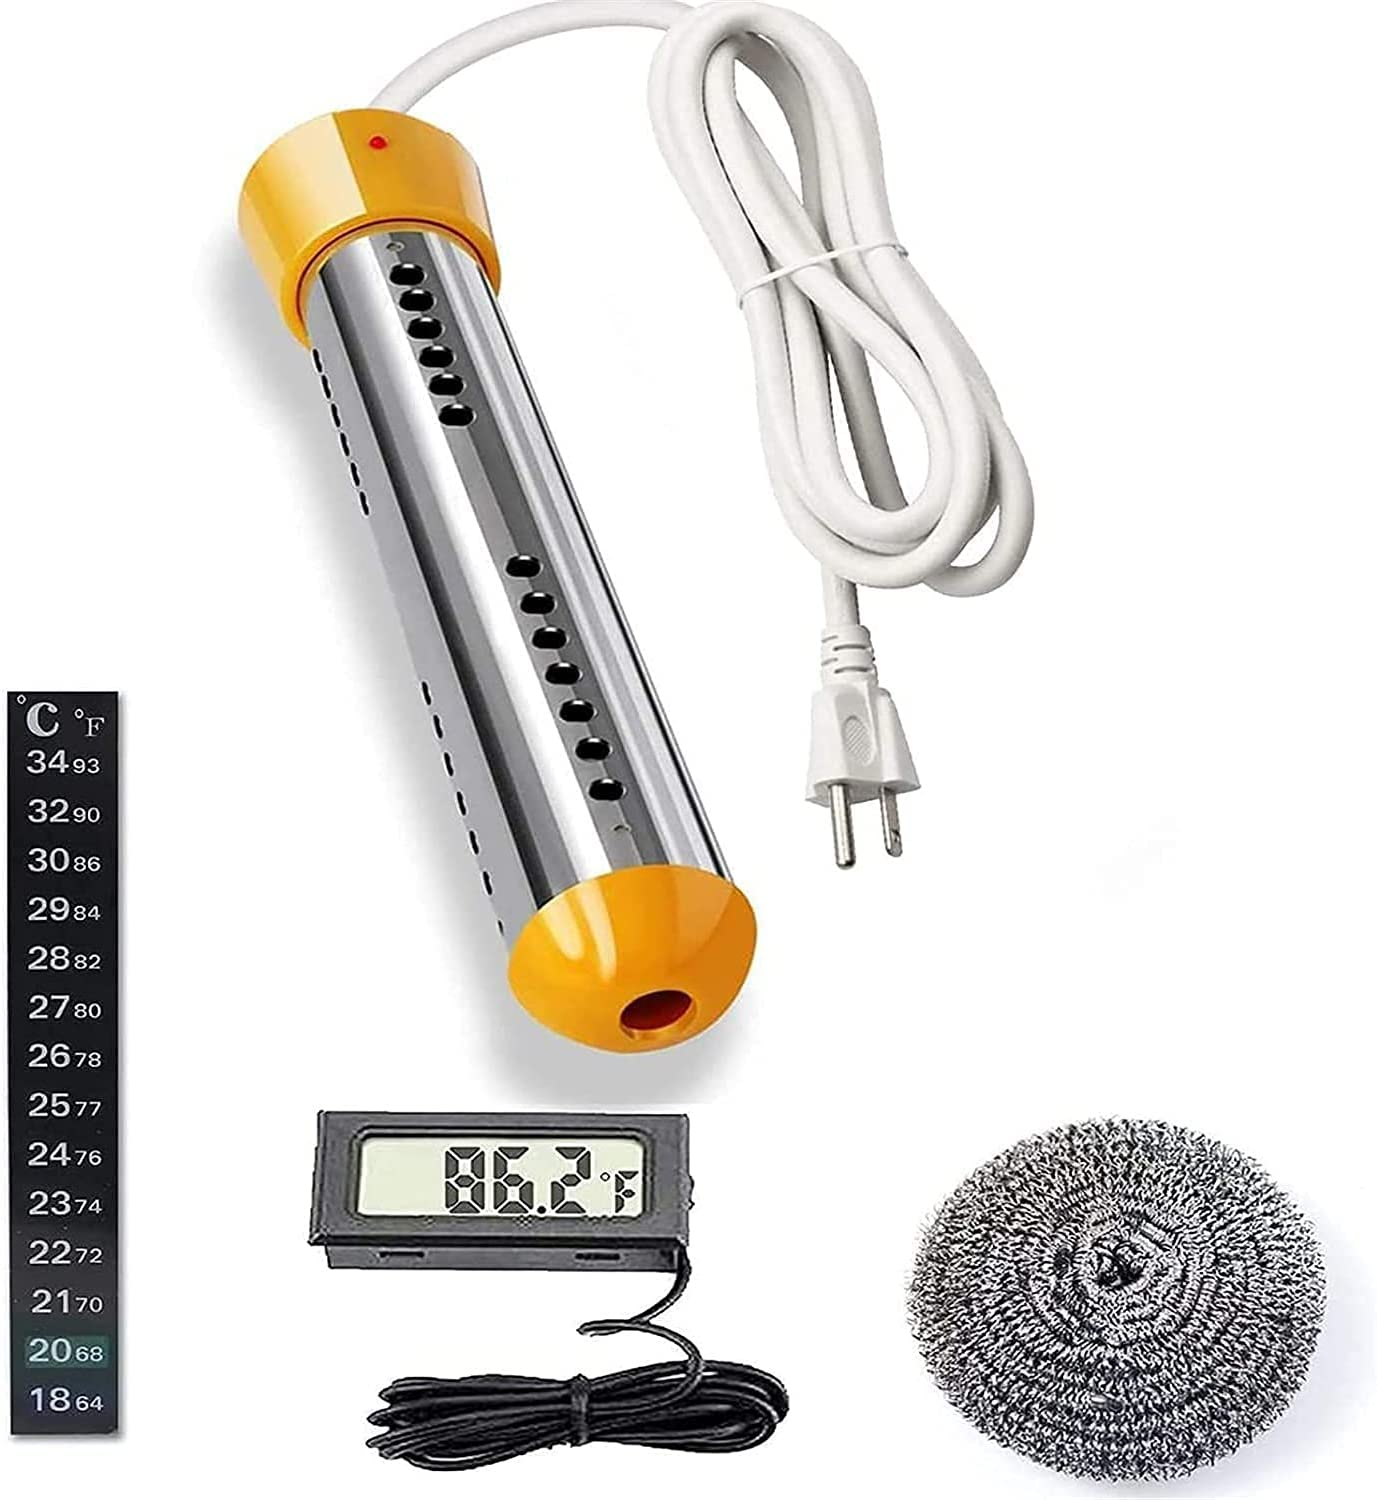 Factory outlet FCPLLTR 2021 New Swimming Pool Heaters-1500W Max 47% OFF 110V Electric Porta